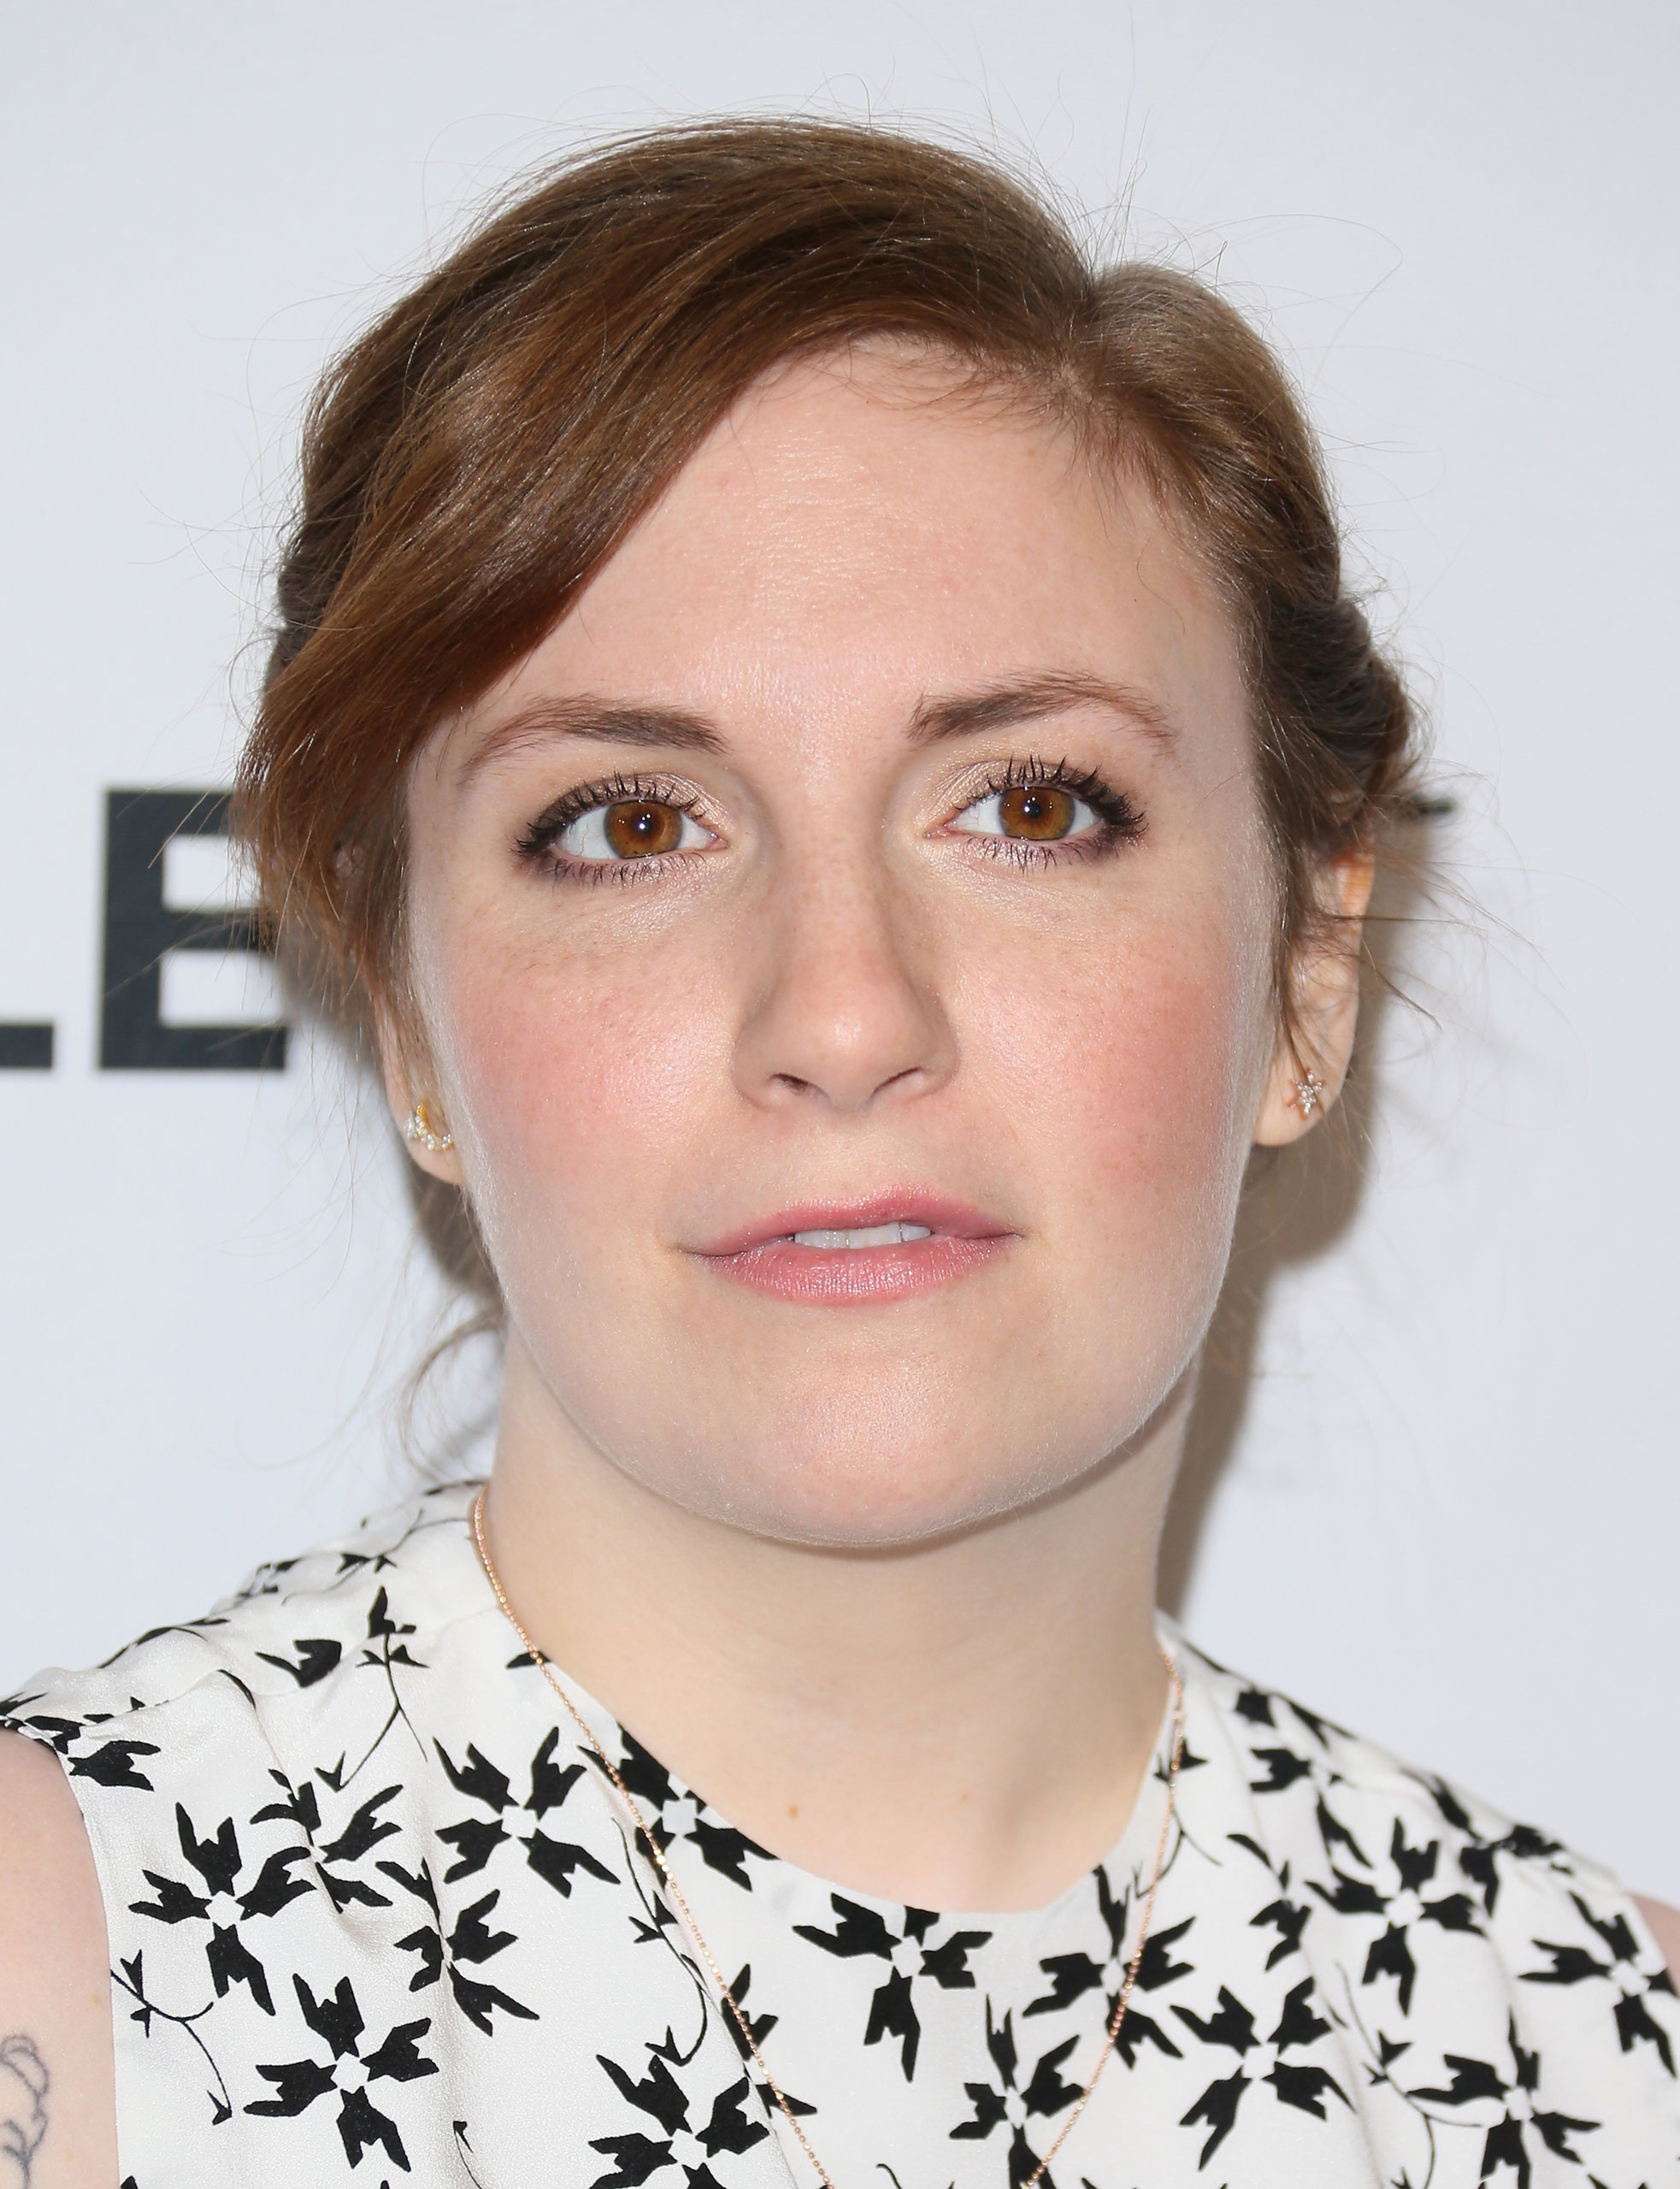 Lena Dunham at the Dolby Theatre on March 8, 2015 in Hollywood.